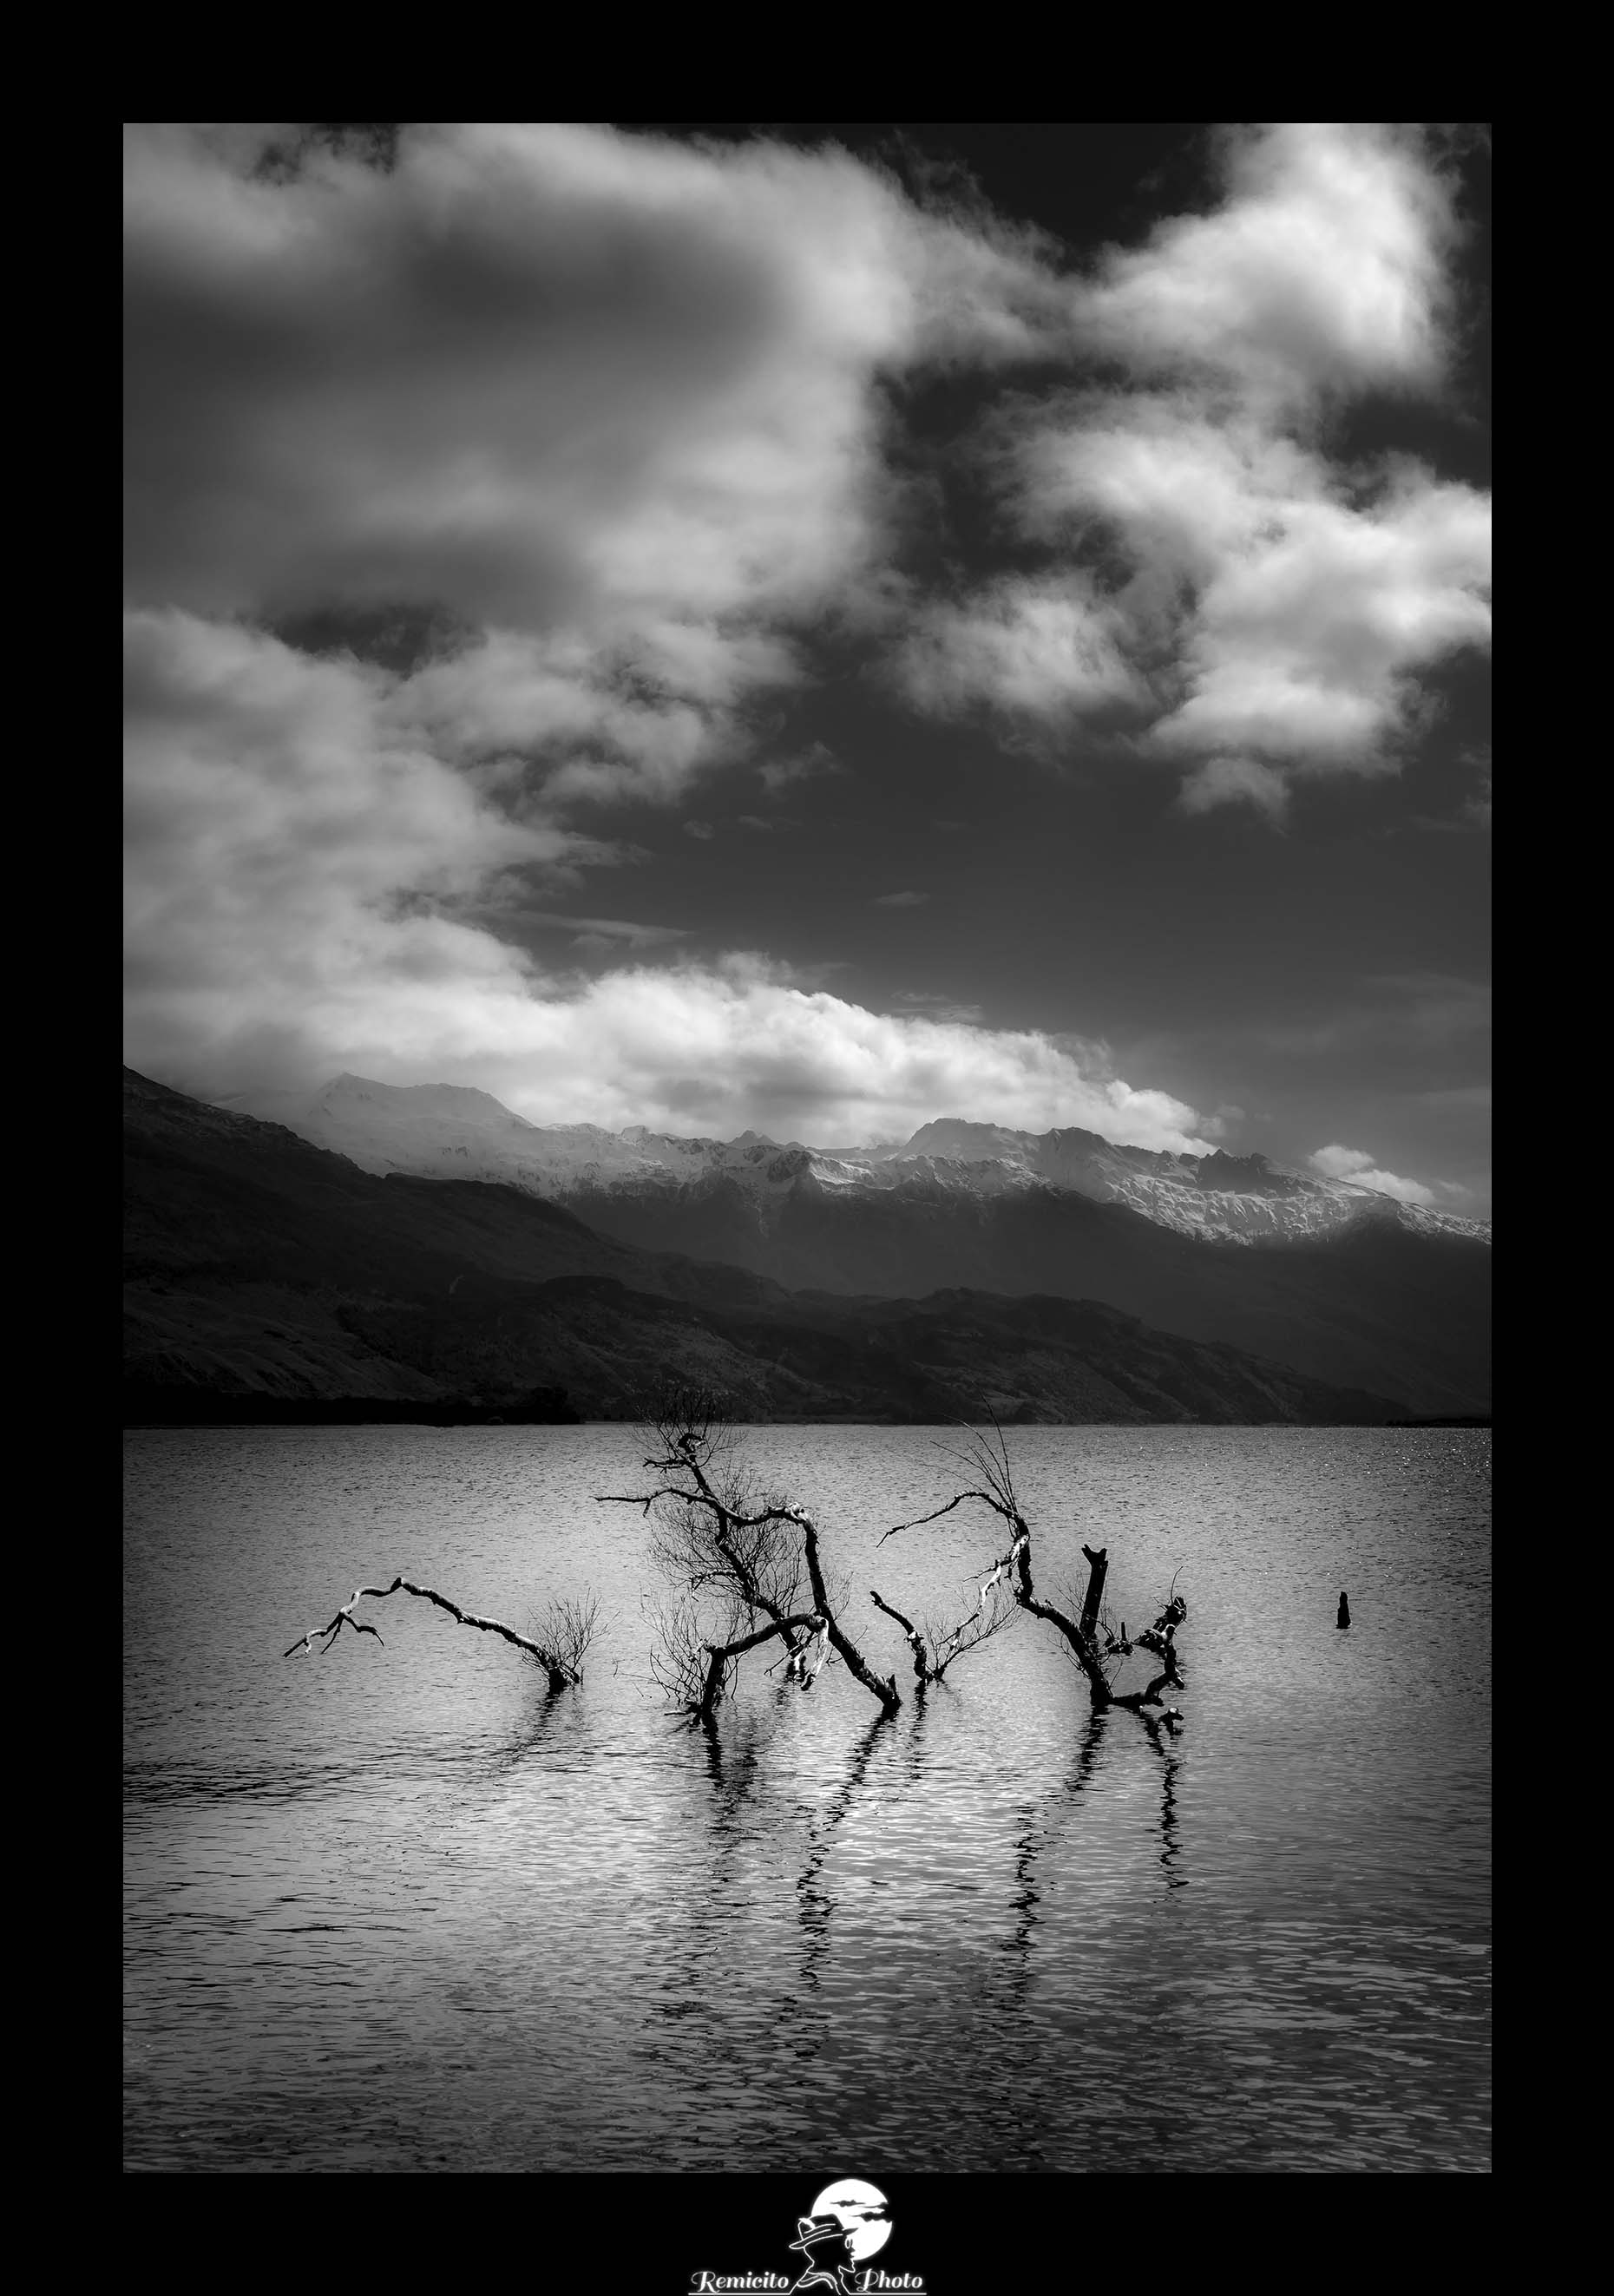 Remicito photo, remicito rémi lacombe photographe paris, belle photo idée cadeau noir et blanc, arbre lac noir et blanc